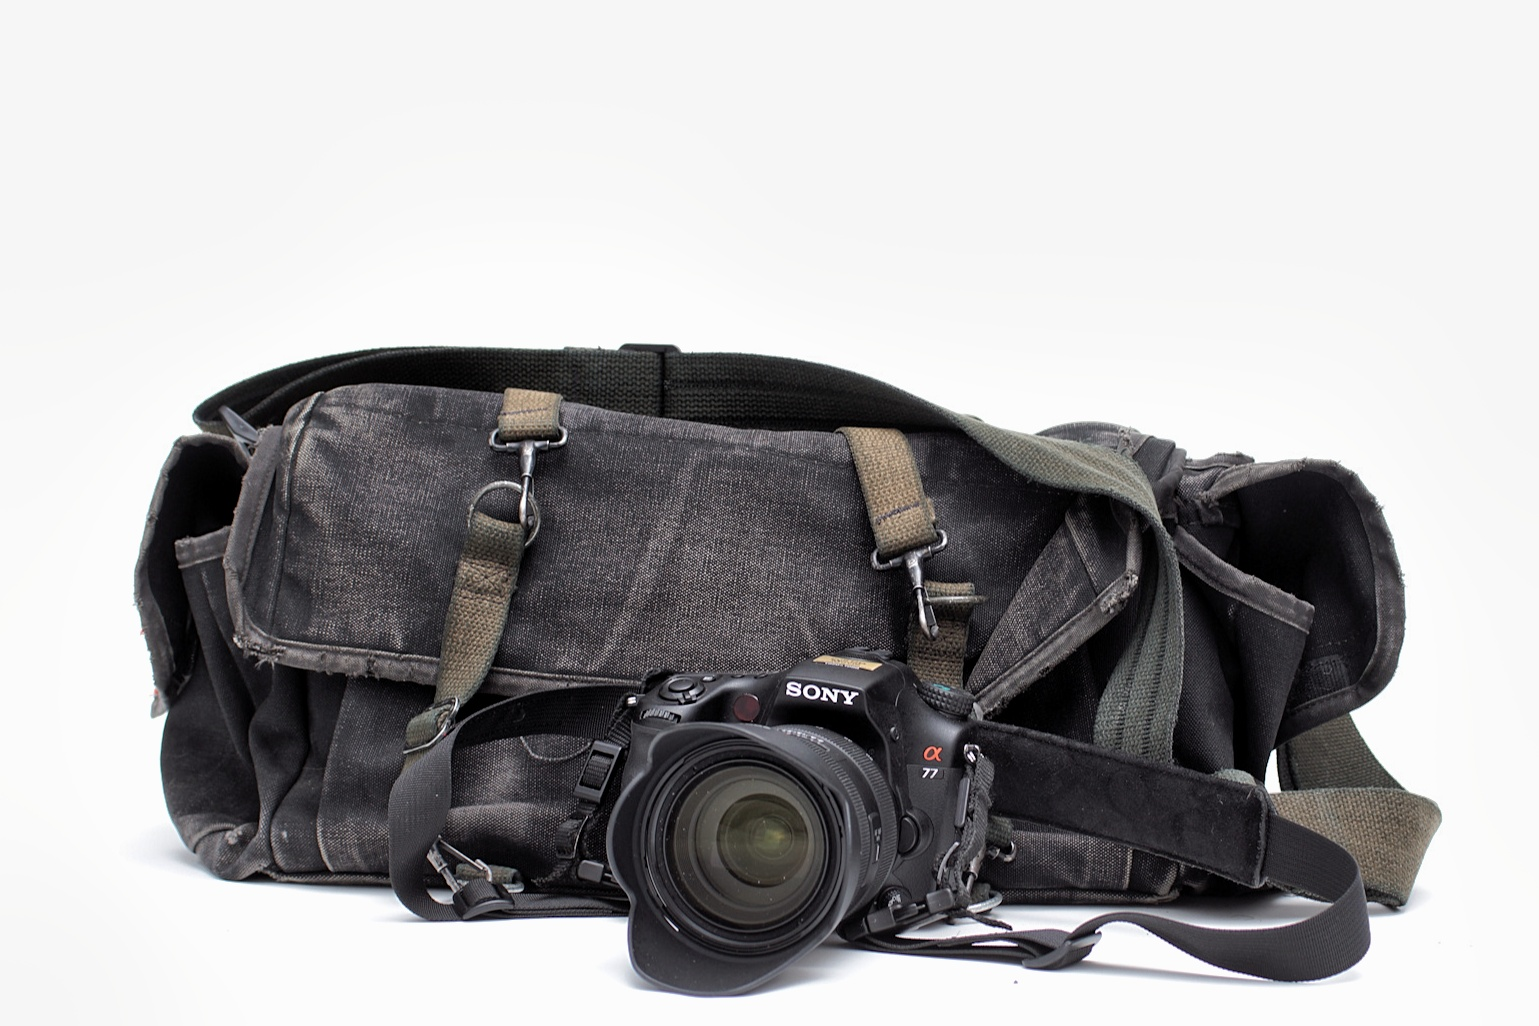 Camera Gear Bags : The visual science lab kirk tuck who cares about camera